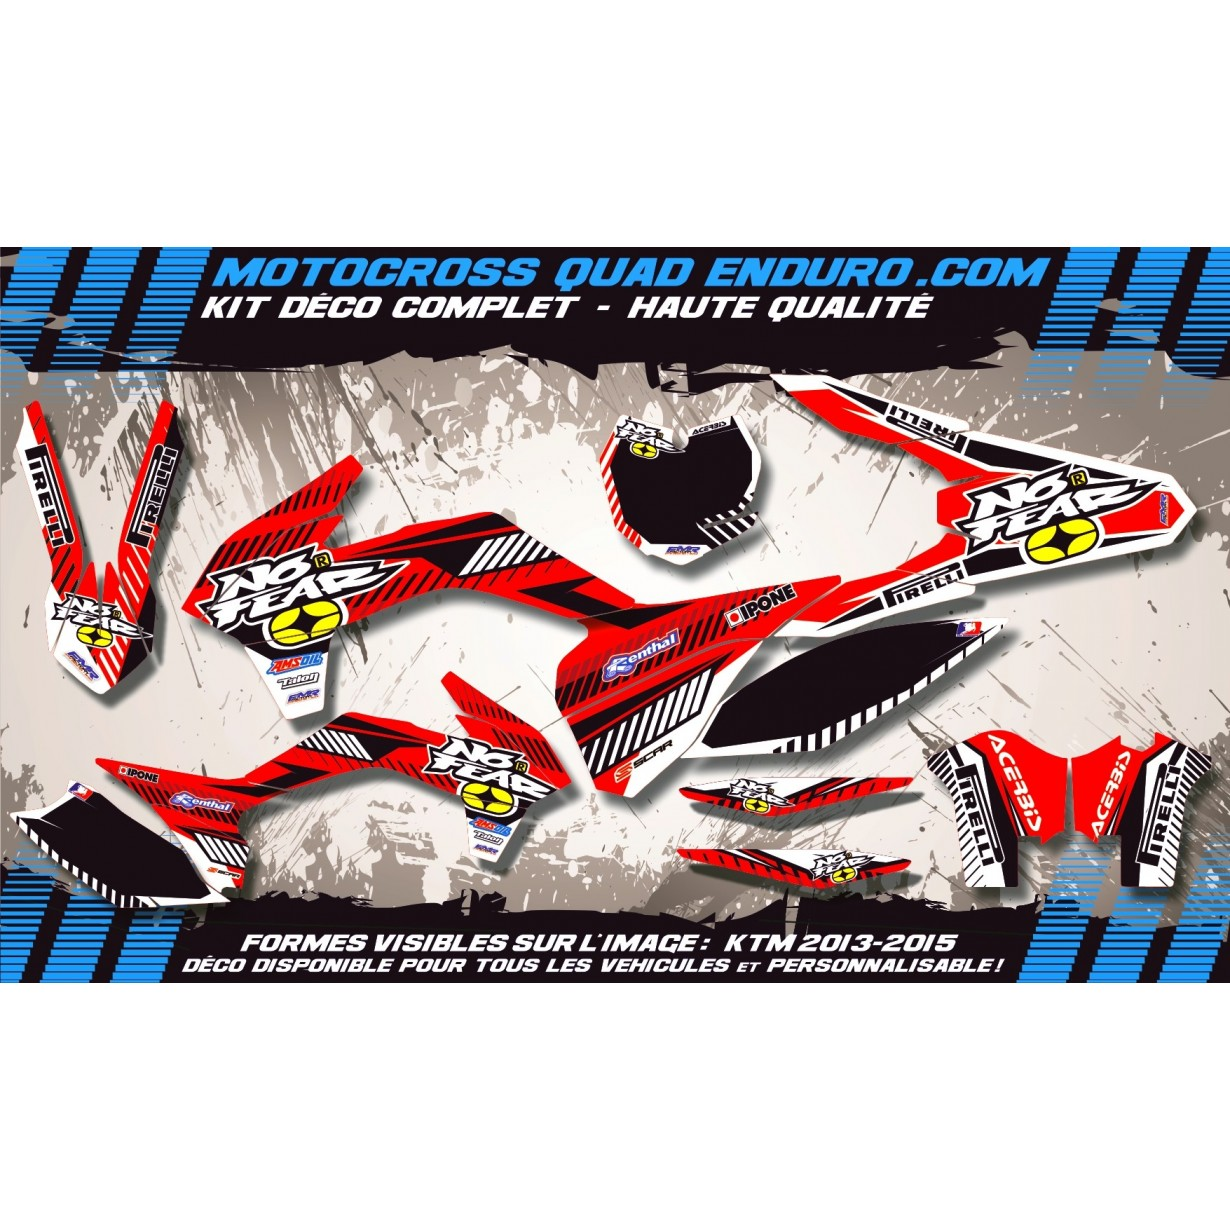 KIT DÉCO Perso 50 RR enduro 2007 NO FEAR MA5B